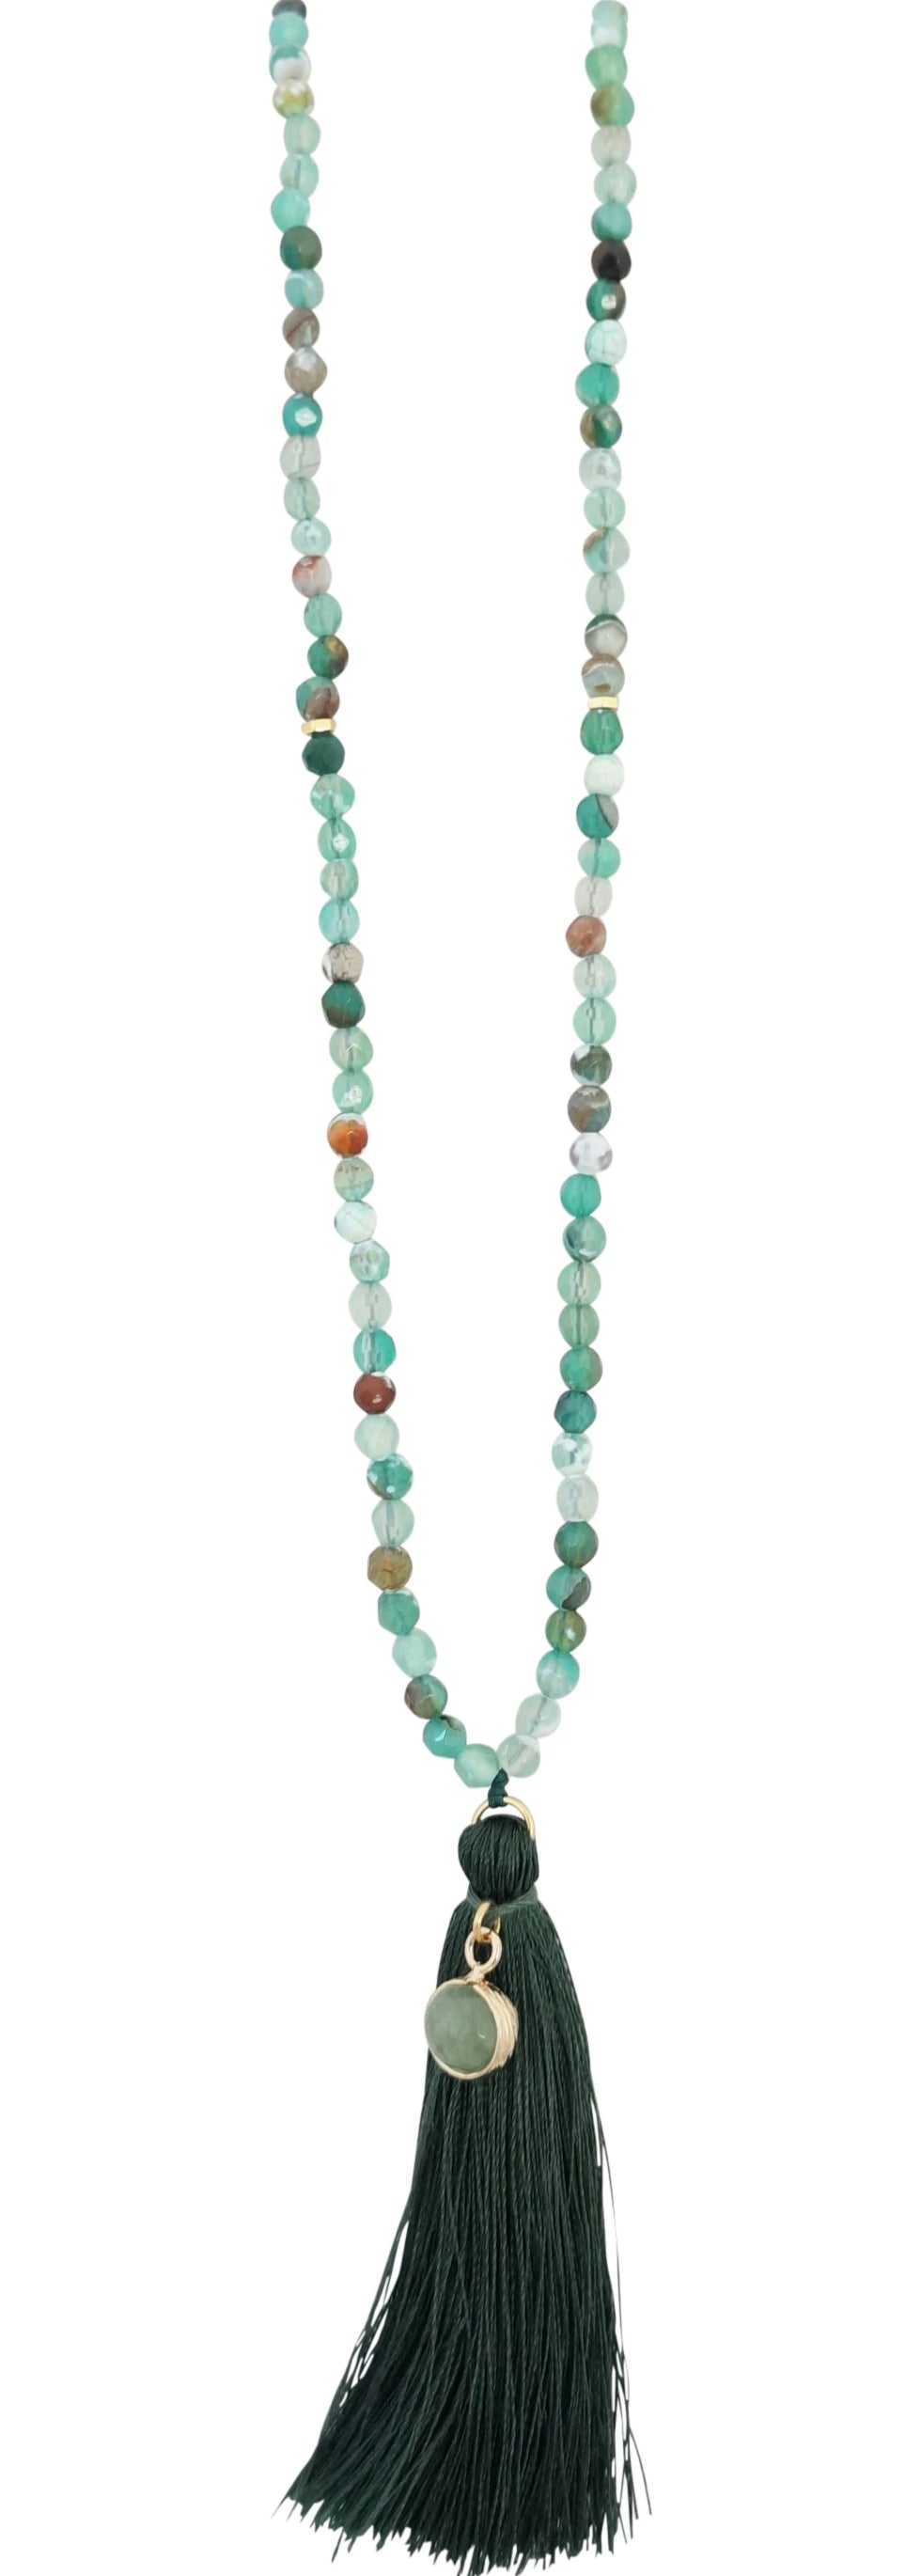 Thrive Necklace - Carolyn Hearn Designs